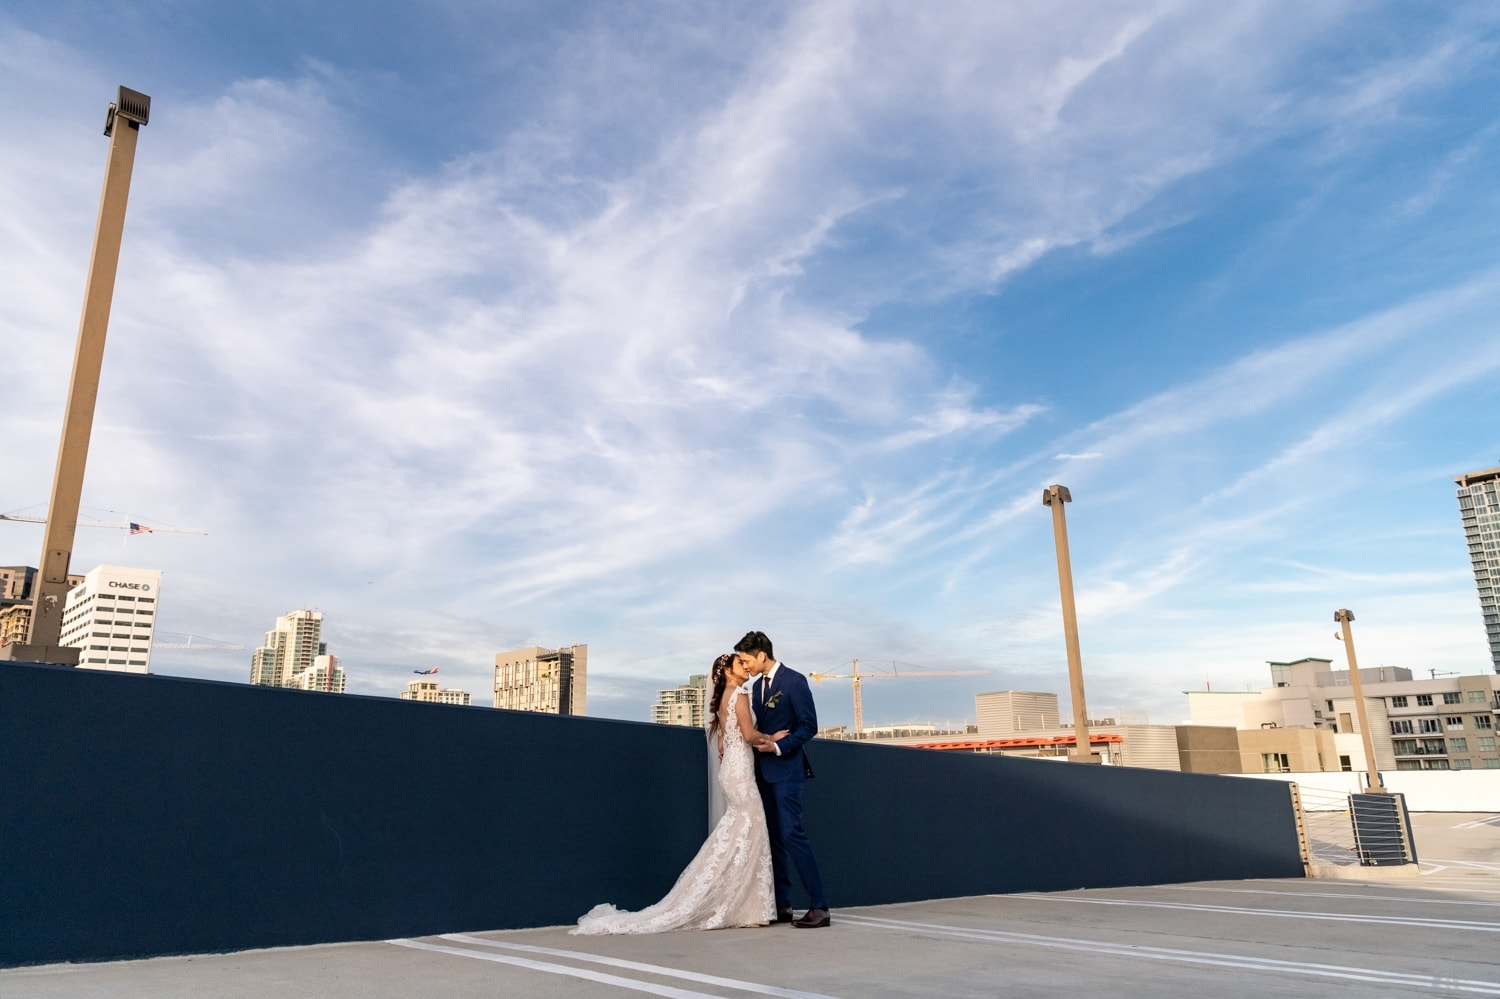 Bride and groom on a rooftop in San Diego after their wedding.